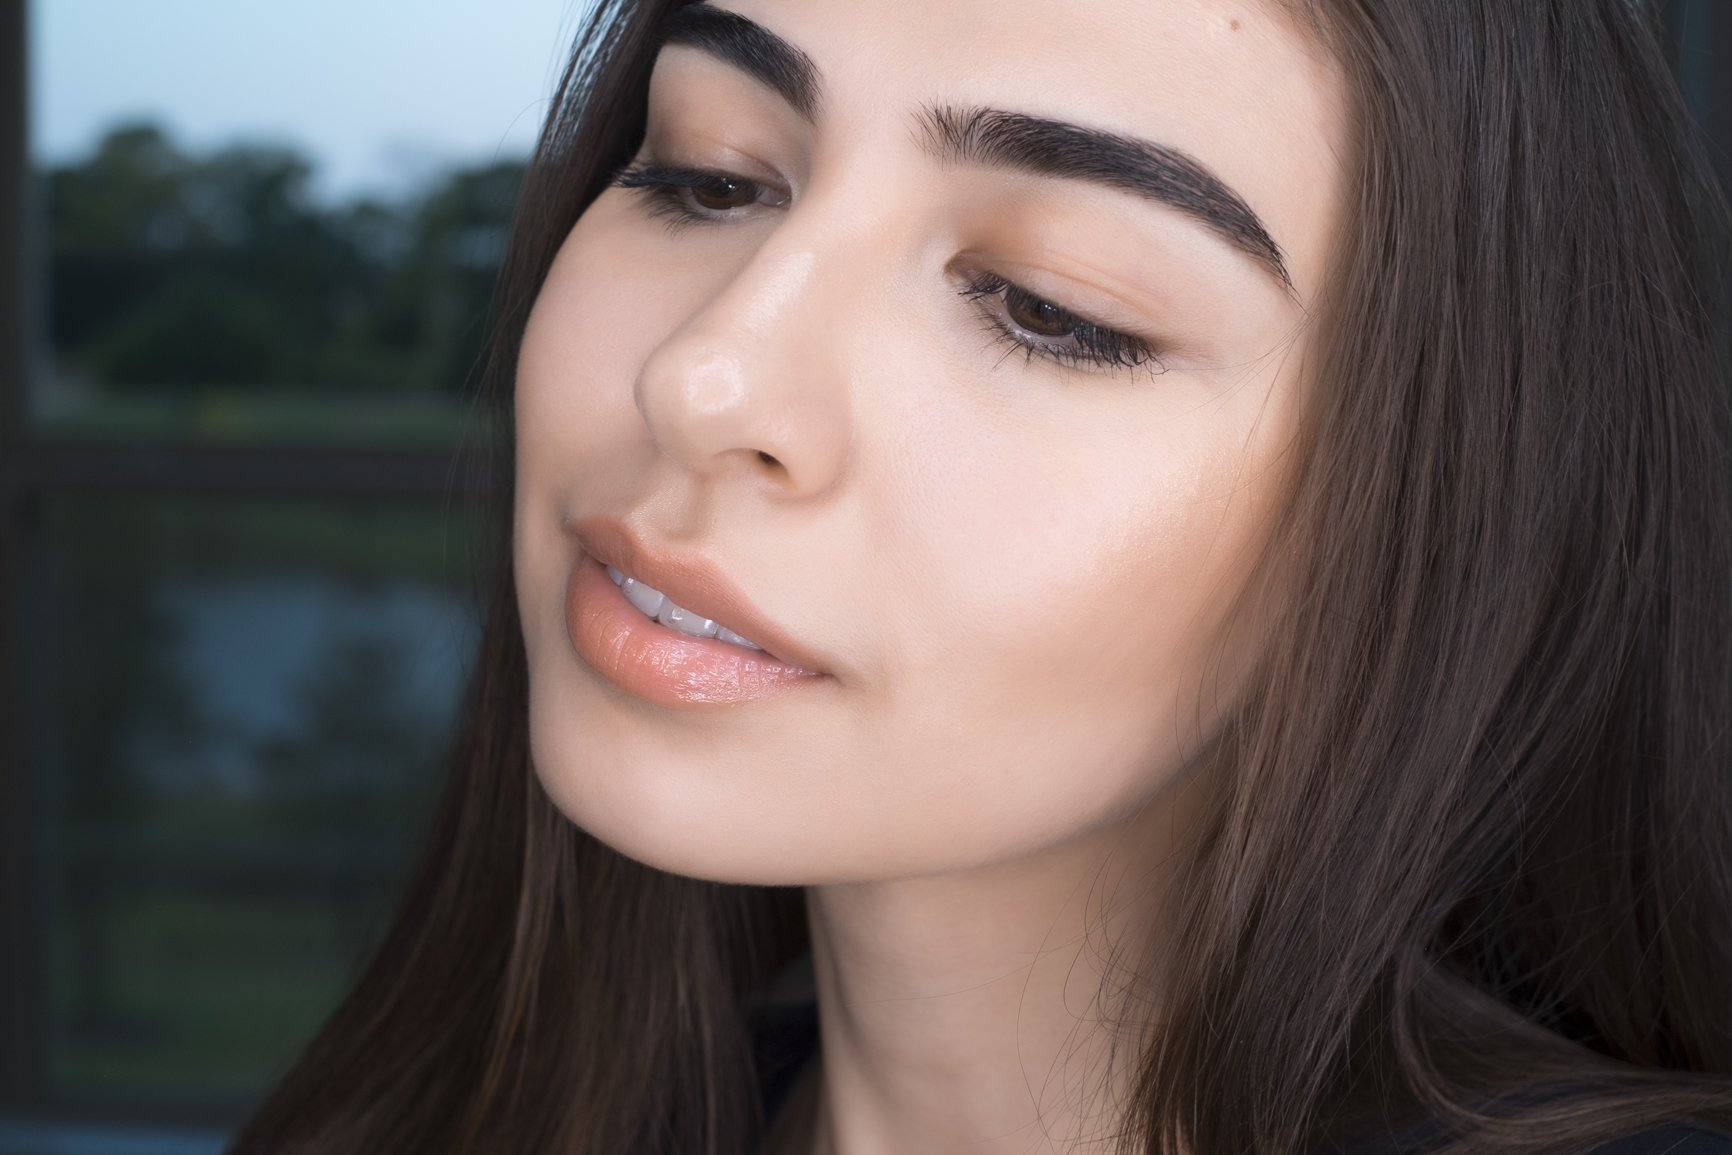 sunkissedblush-benefit-cosmetics-brow-Contour-Pro-4-In-1-Defining-Highlighting-Pencil (6 of 9)